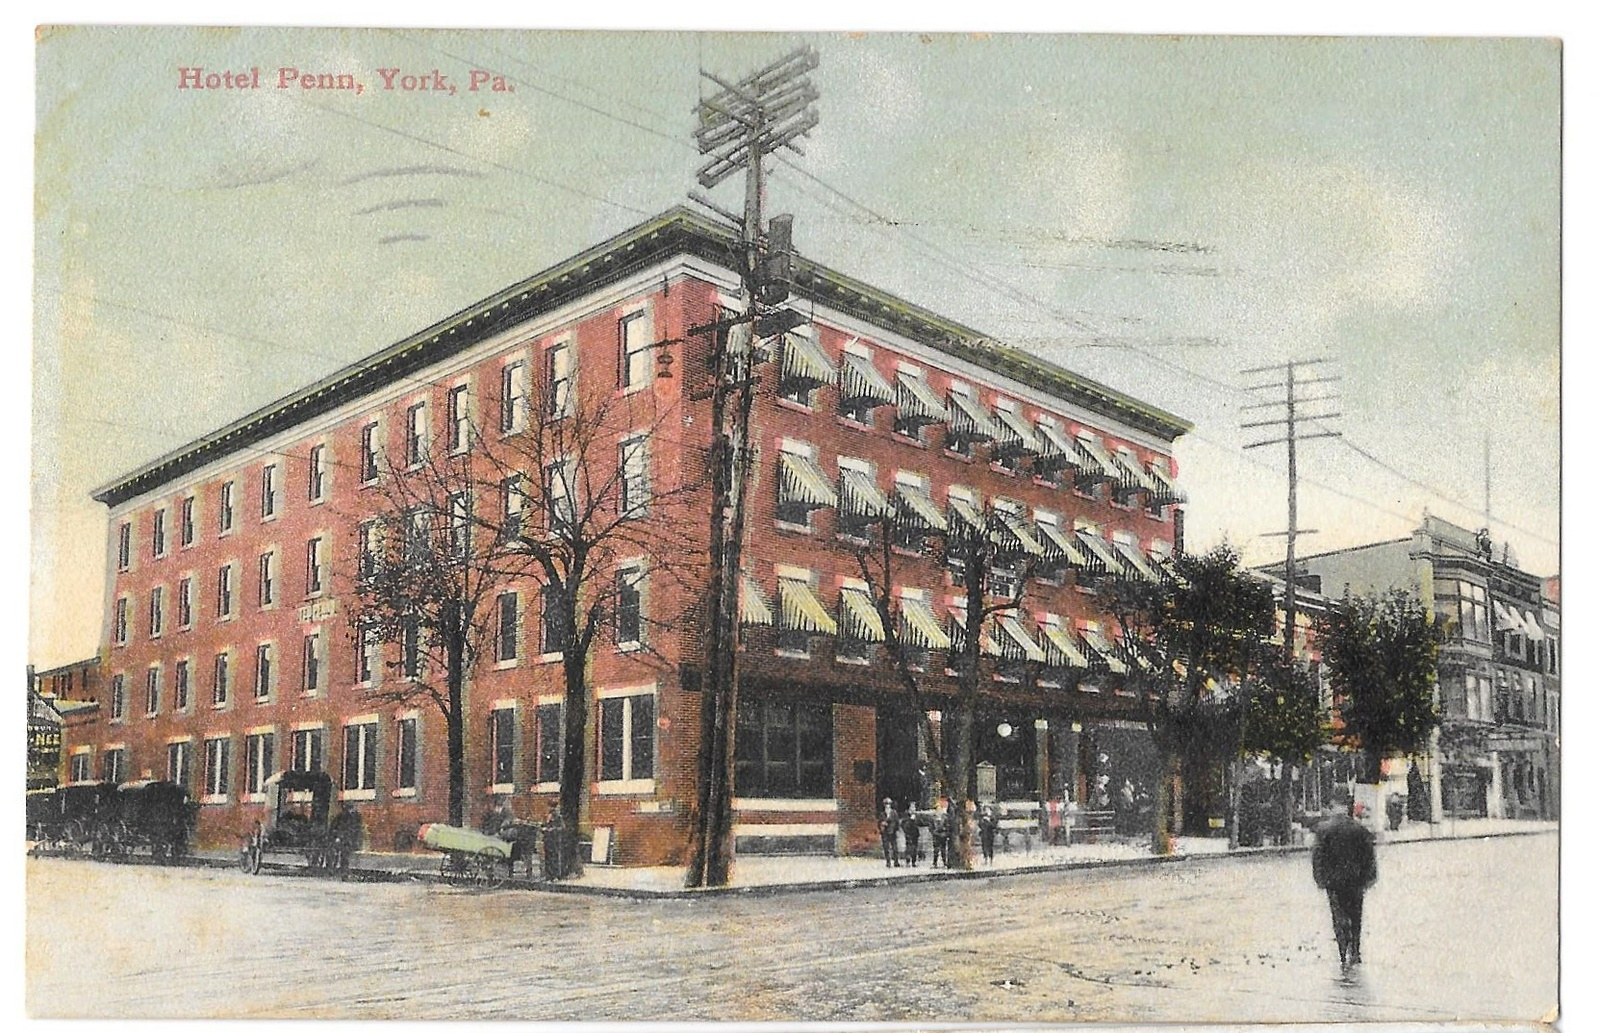 York pa hotel penn telephone poles vintage postcard 1910 for Outdoor furniture york pa